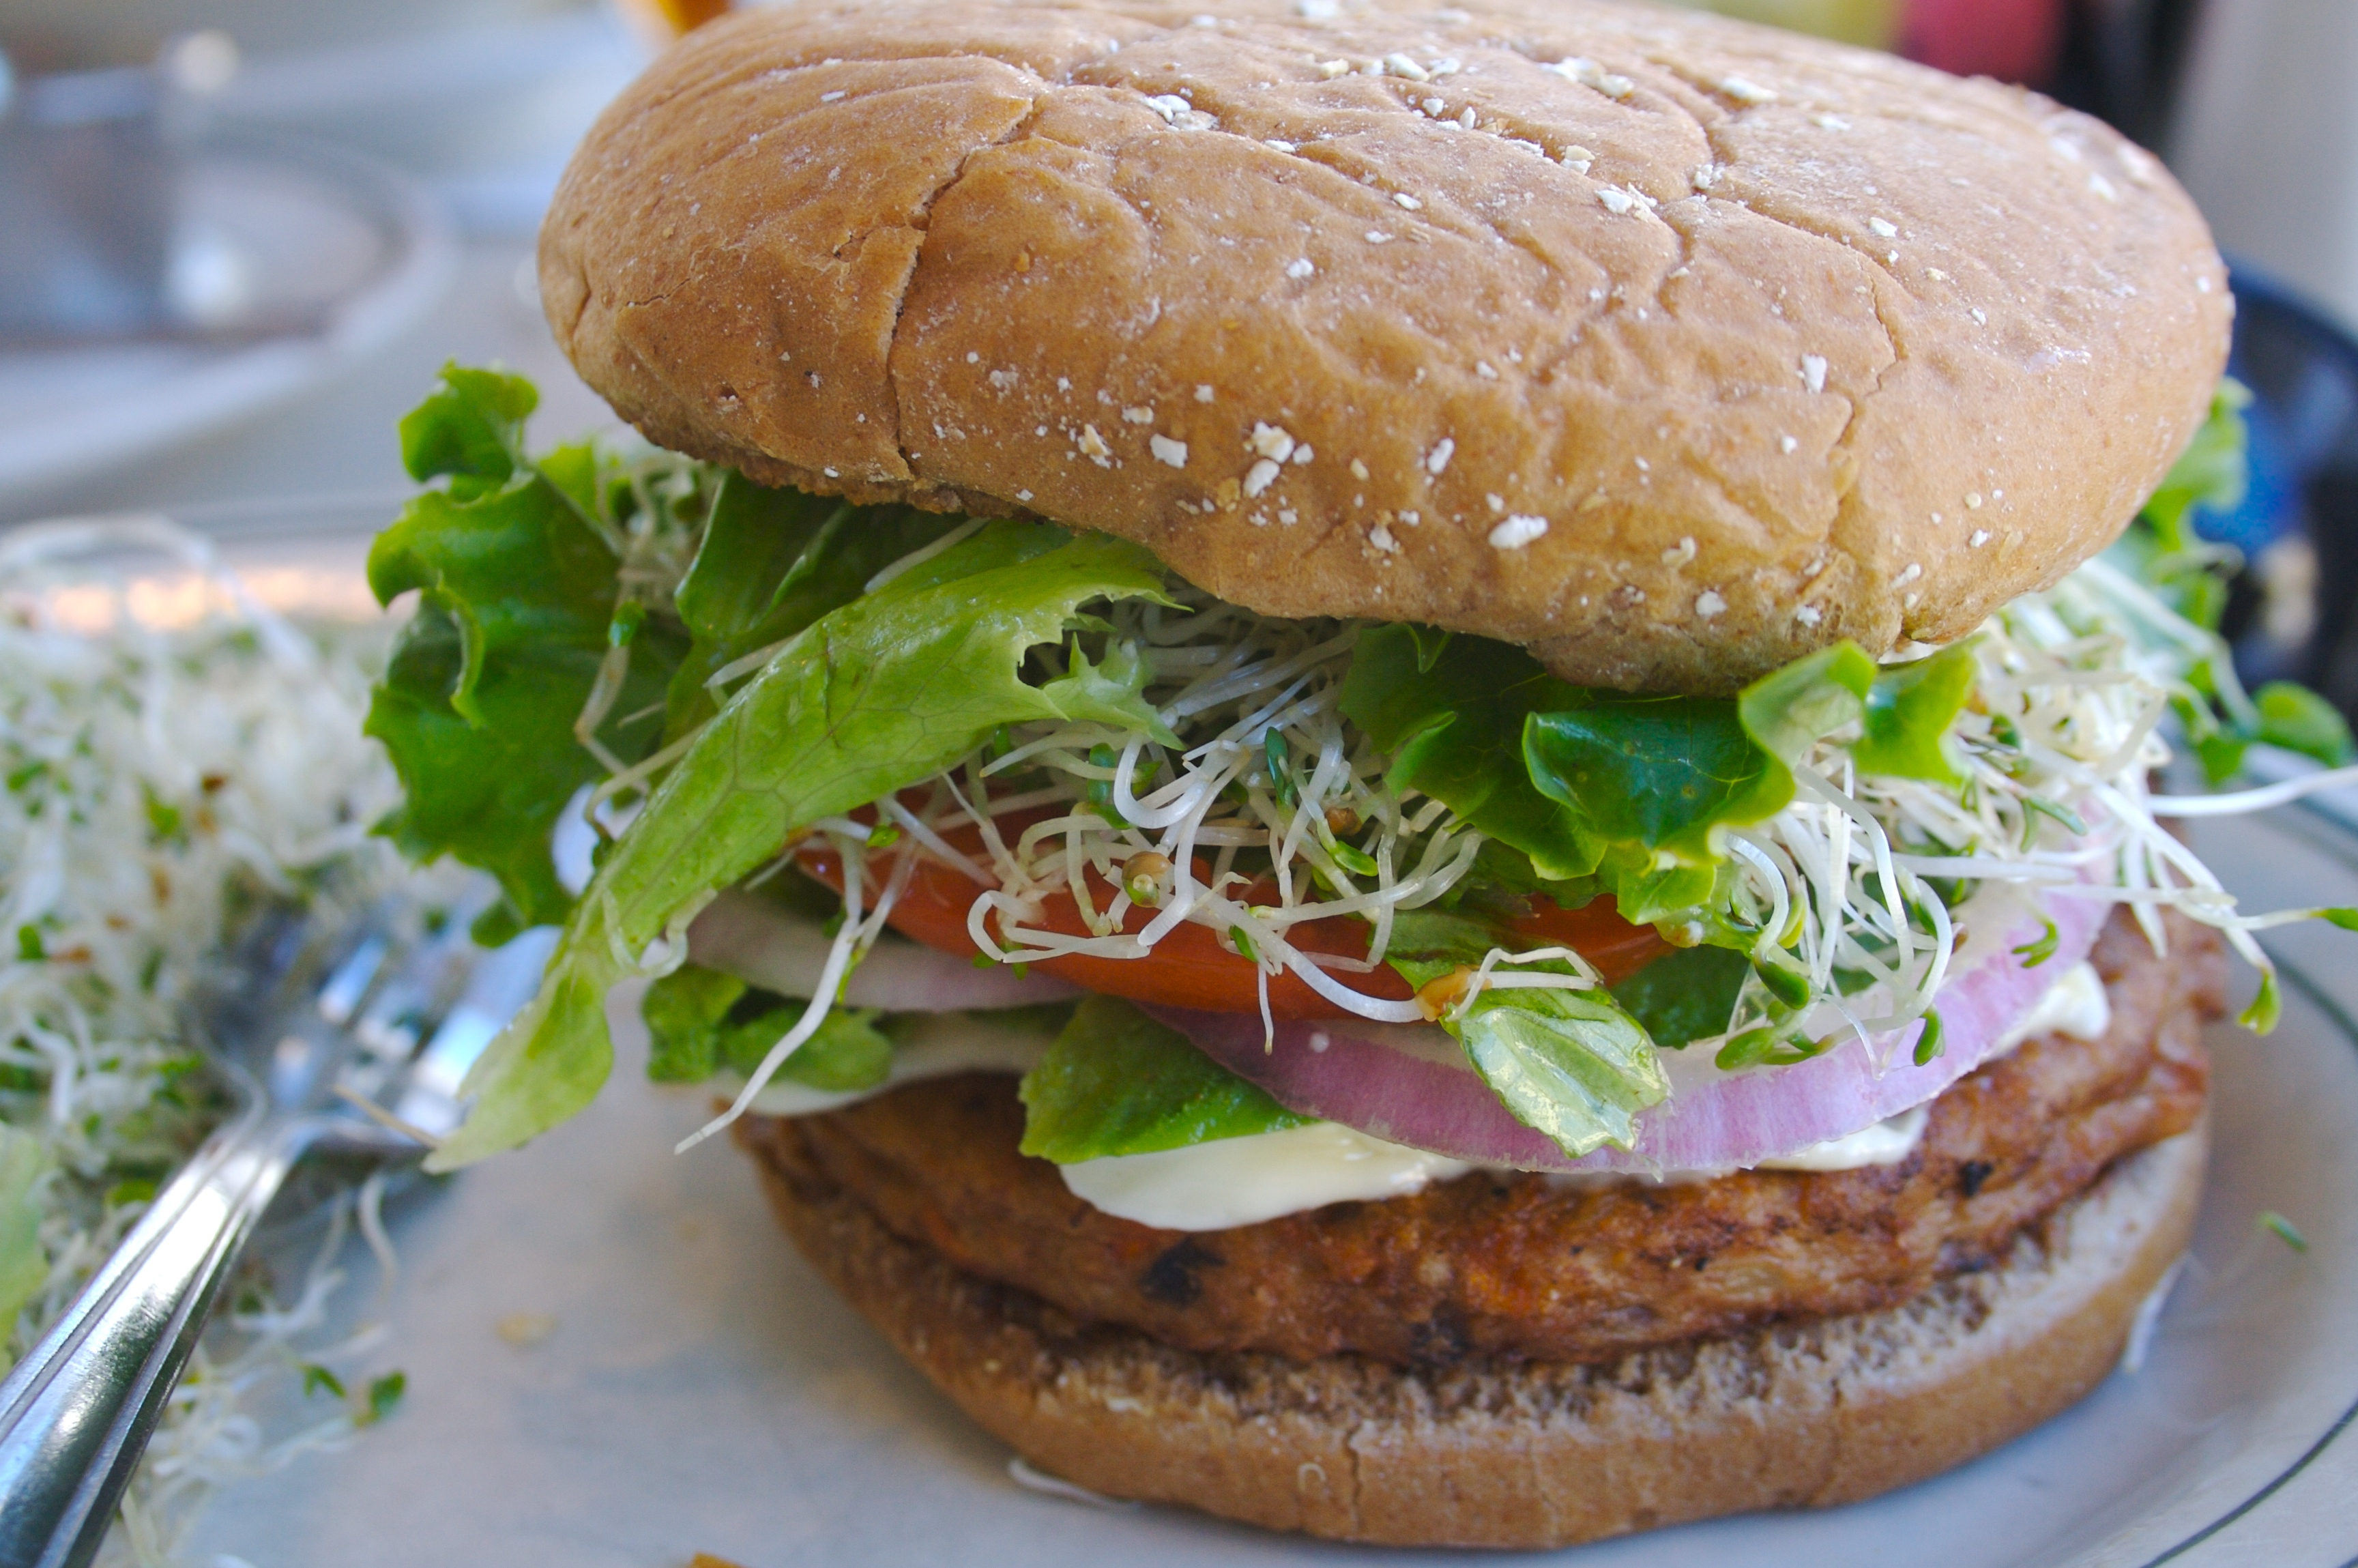 Veggie burger flickr user divinemisscopa creative commons